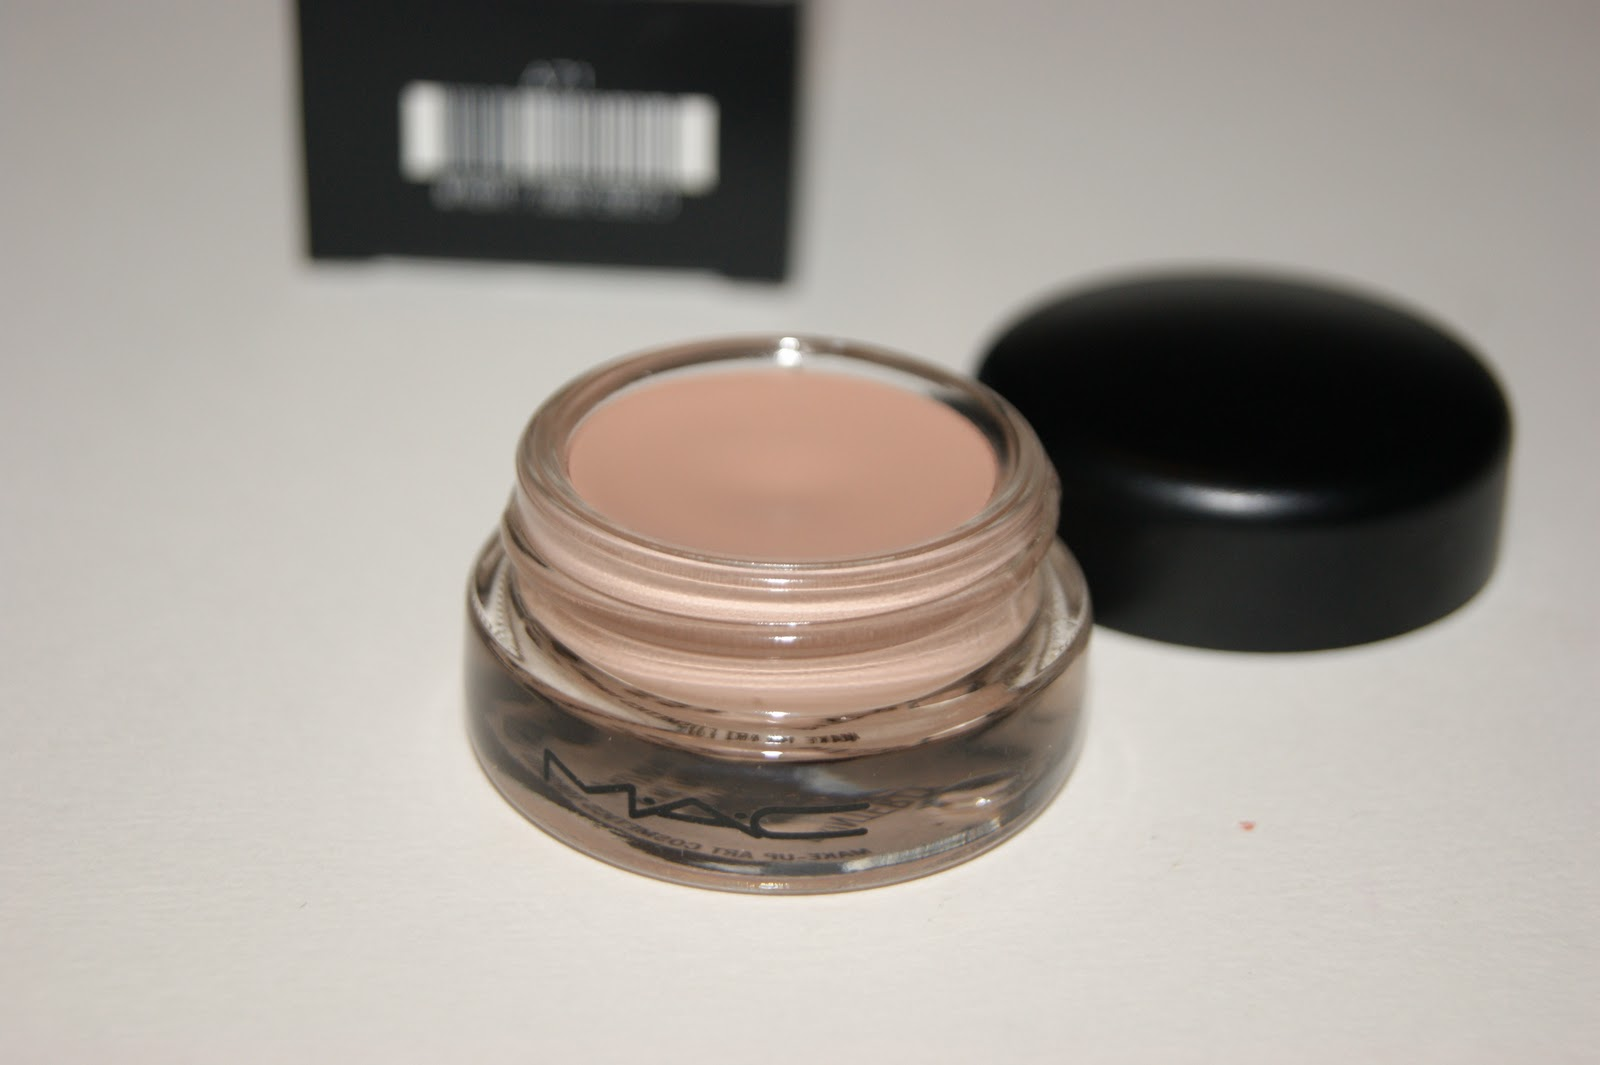 mac painterly paint pot review the sunday girl